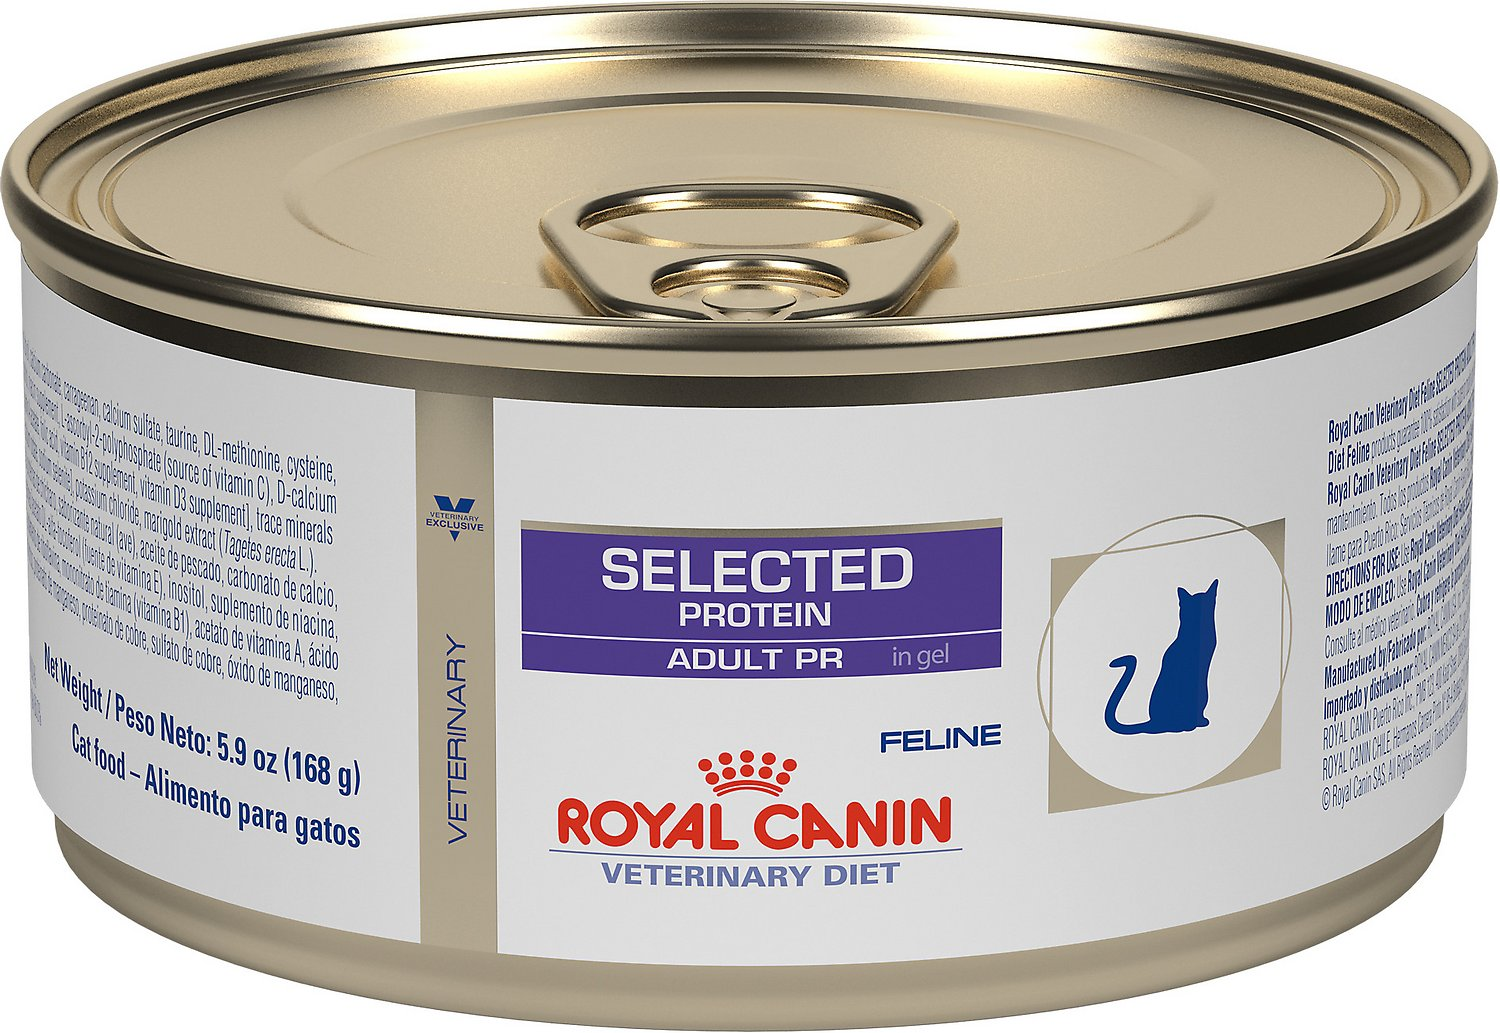 royal canin veterinary diet selected protein adult pr canned cat food 5 9 oz case of 24. Black Bedroom Furniture Sets. Home Design Ideas